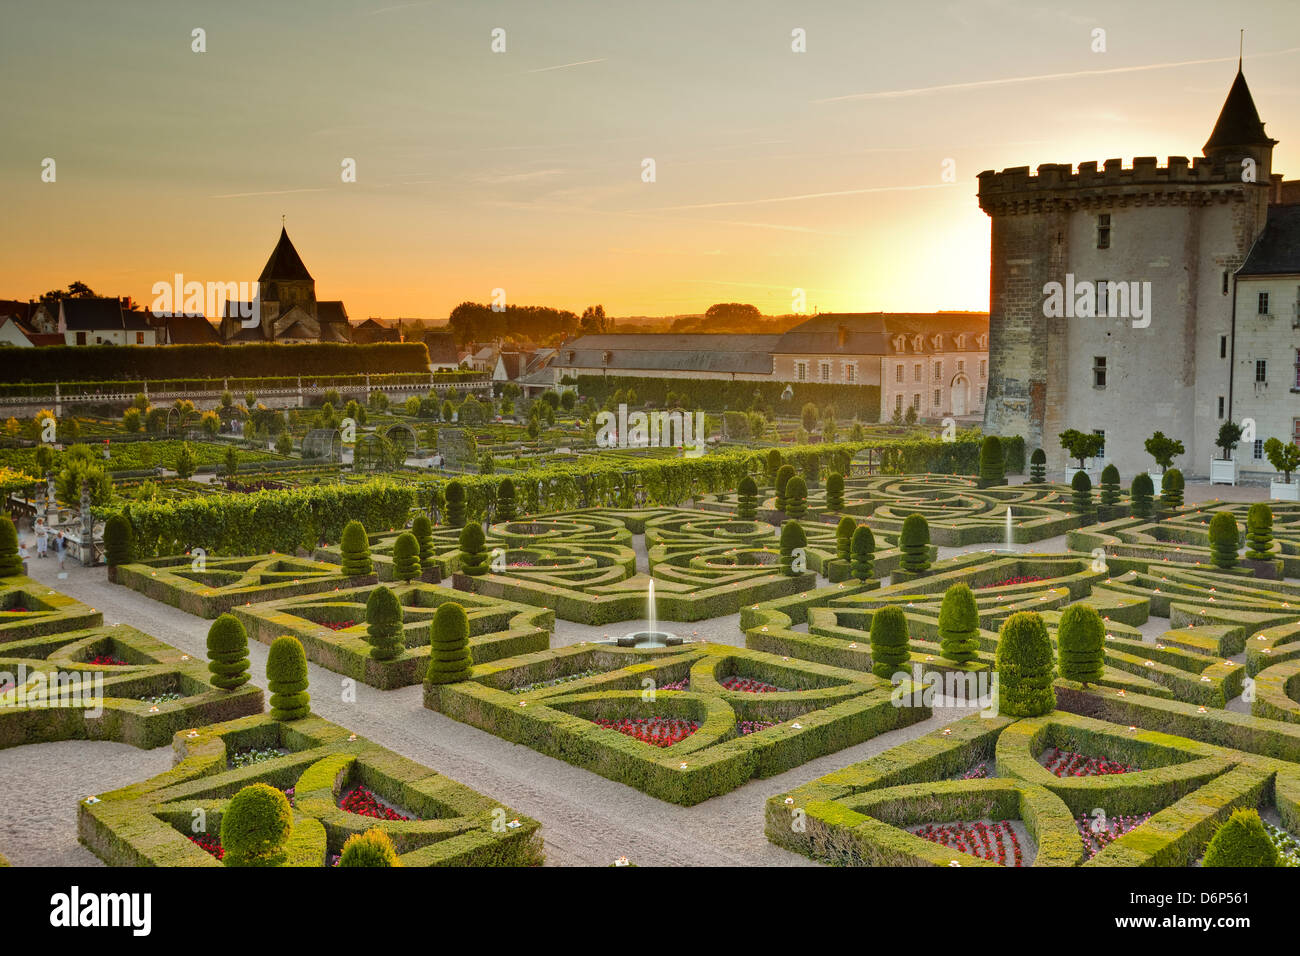 das chateau de villandry mit seinen g rten bei sonnenuntergang unesco weltkulturerbe indre et. Black Bedroom Furniture Sets. Home Design Ideas